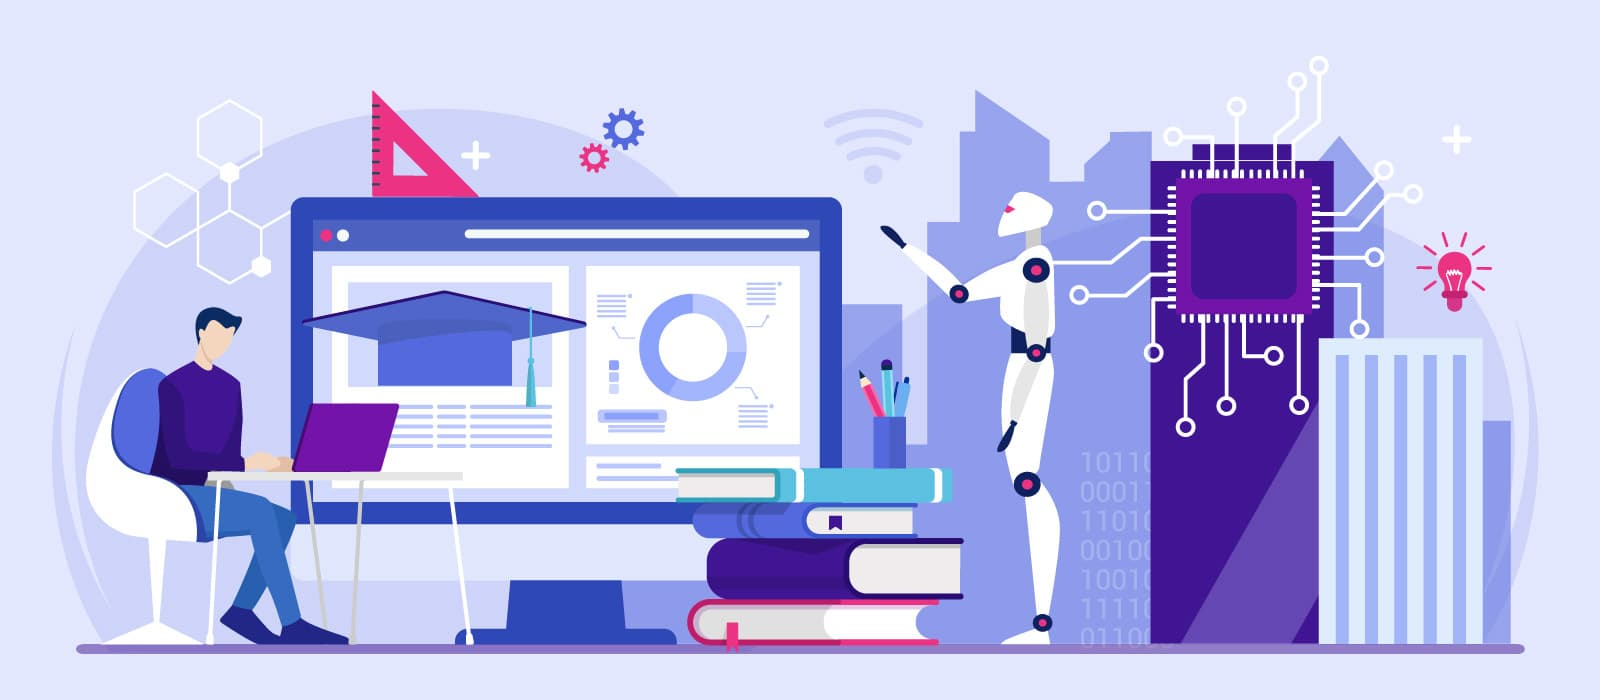 Artificial Intelligence in Education: Use Cases and Applications